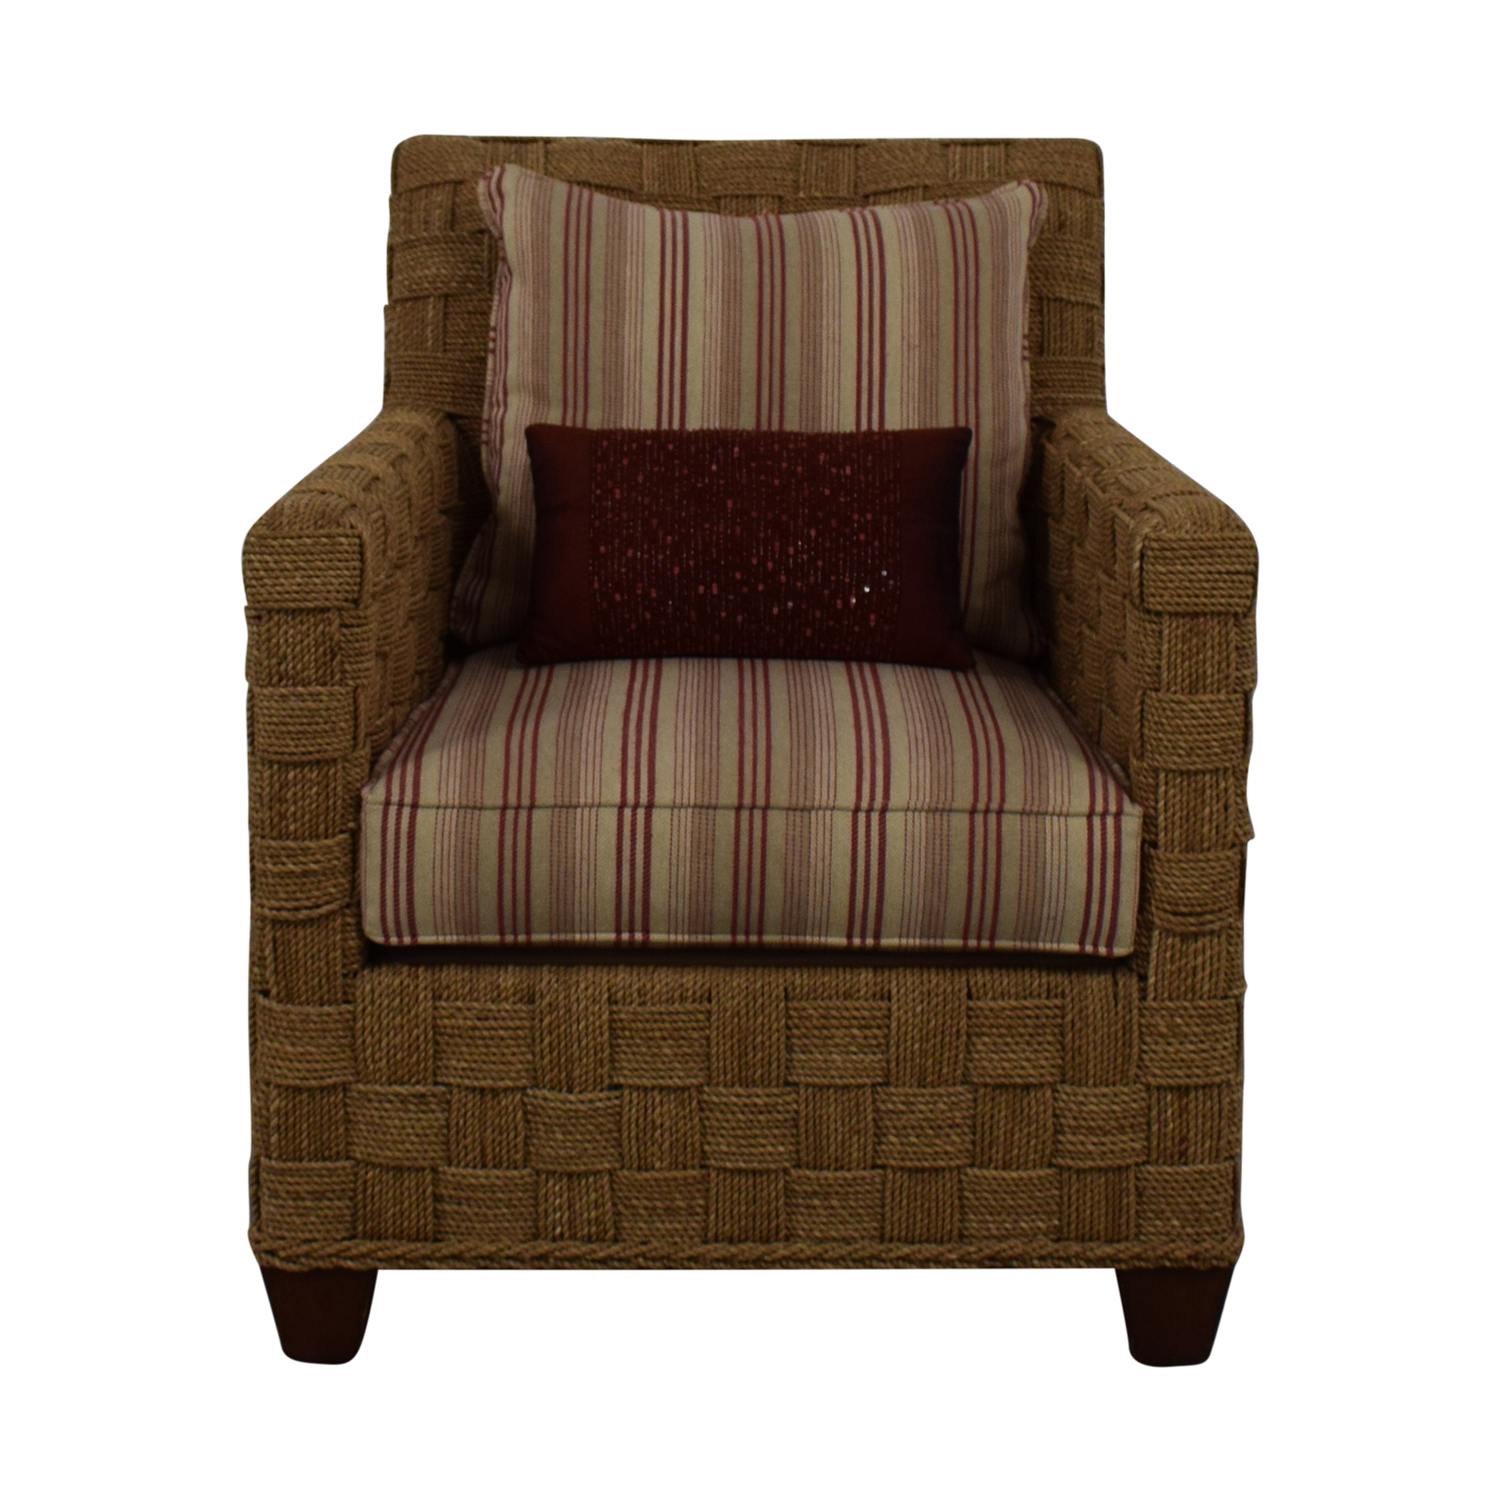 Ethan Allen Ethan Allen Balta Accent Chair